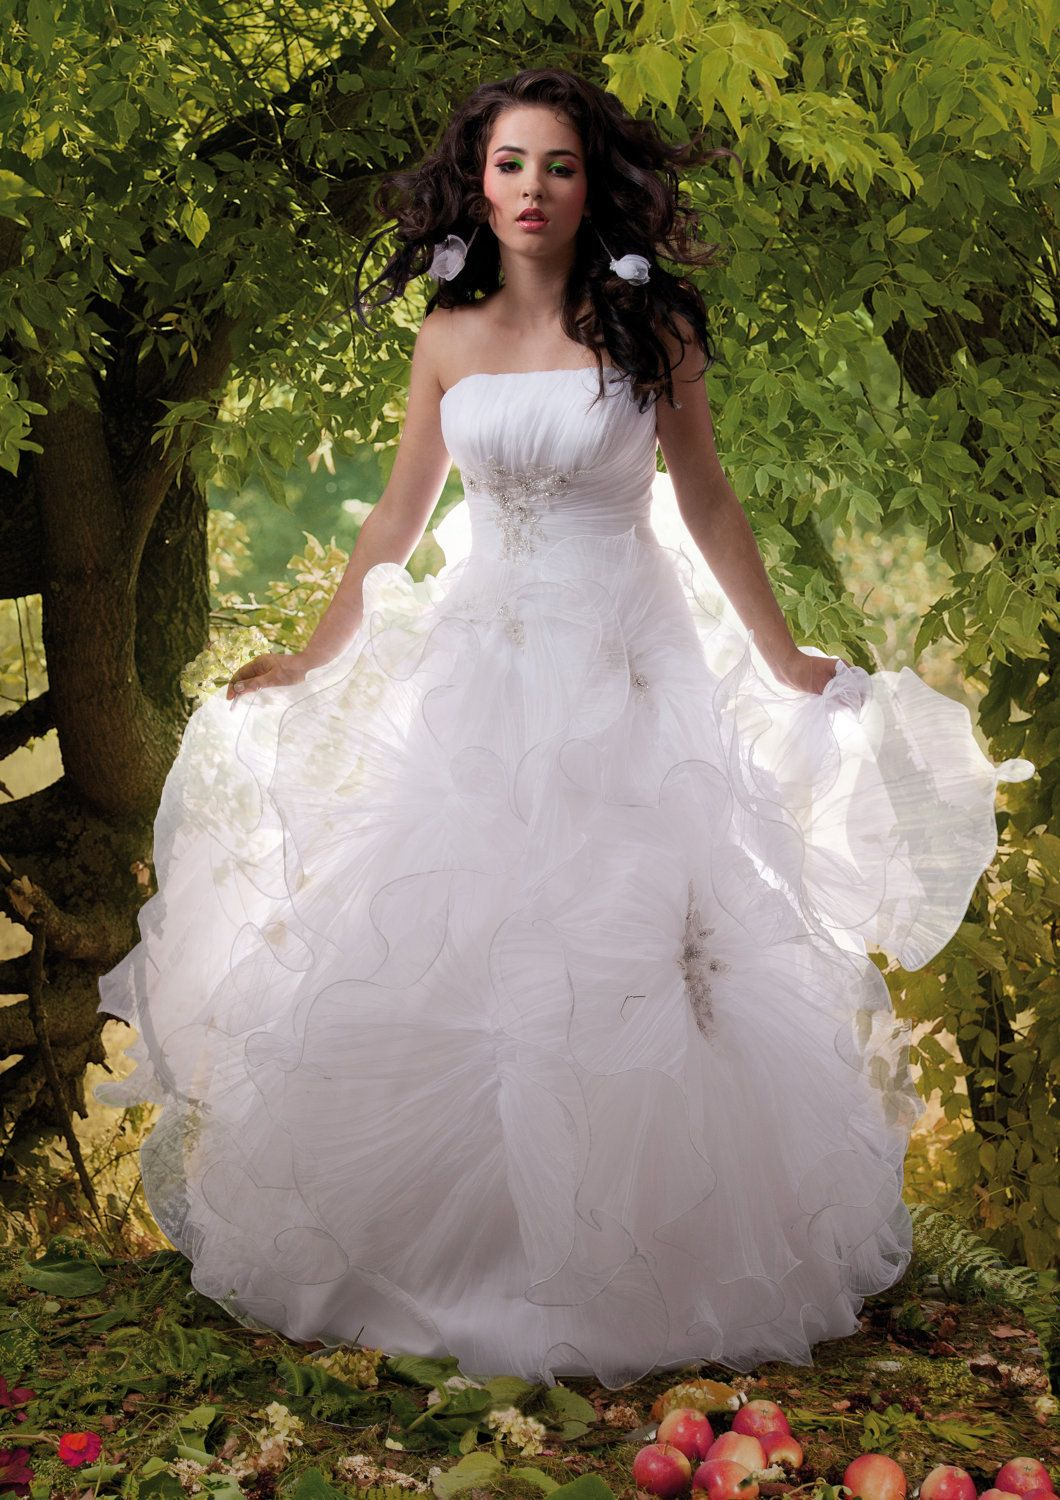 Fairytale Tinkerbell. The real dream wedding dress from Royal ...